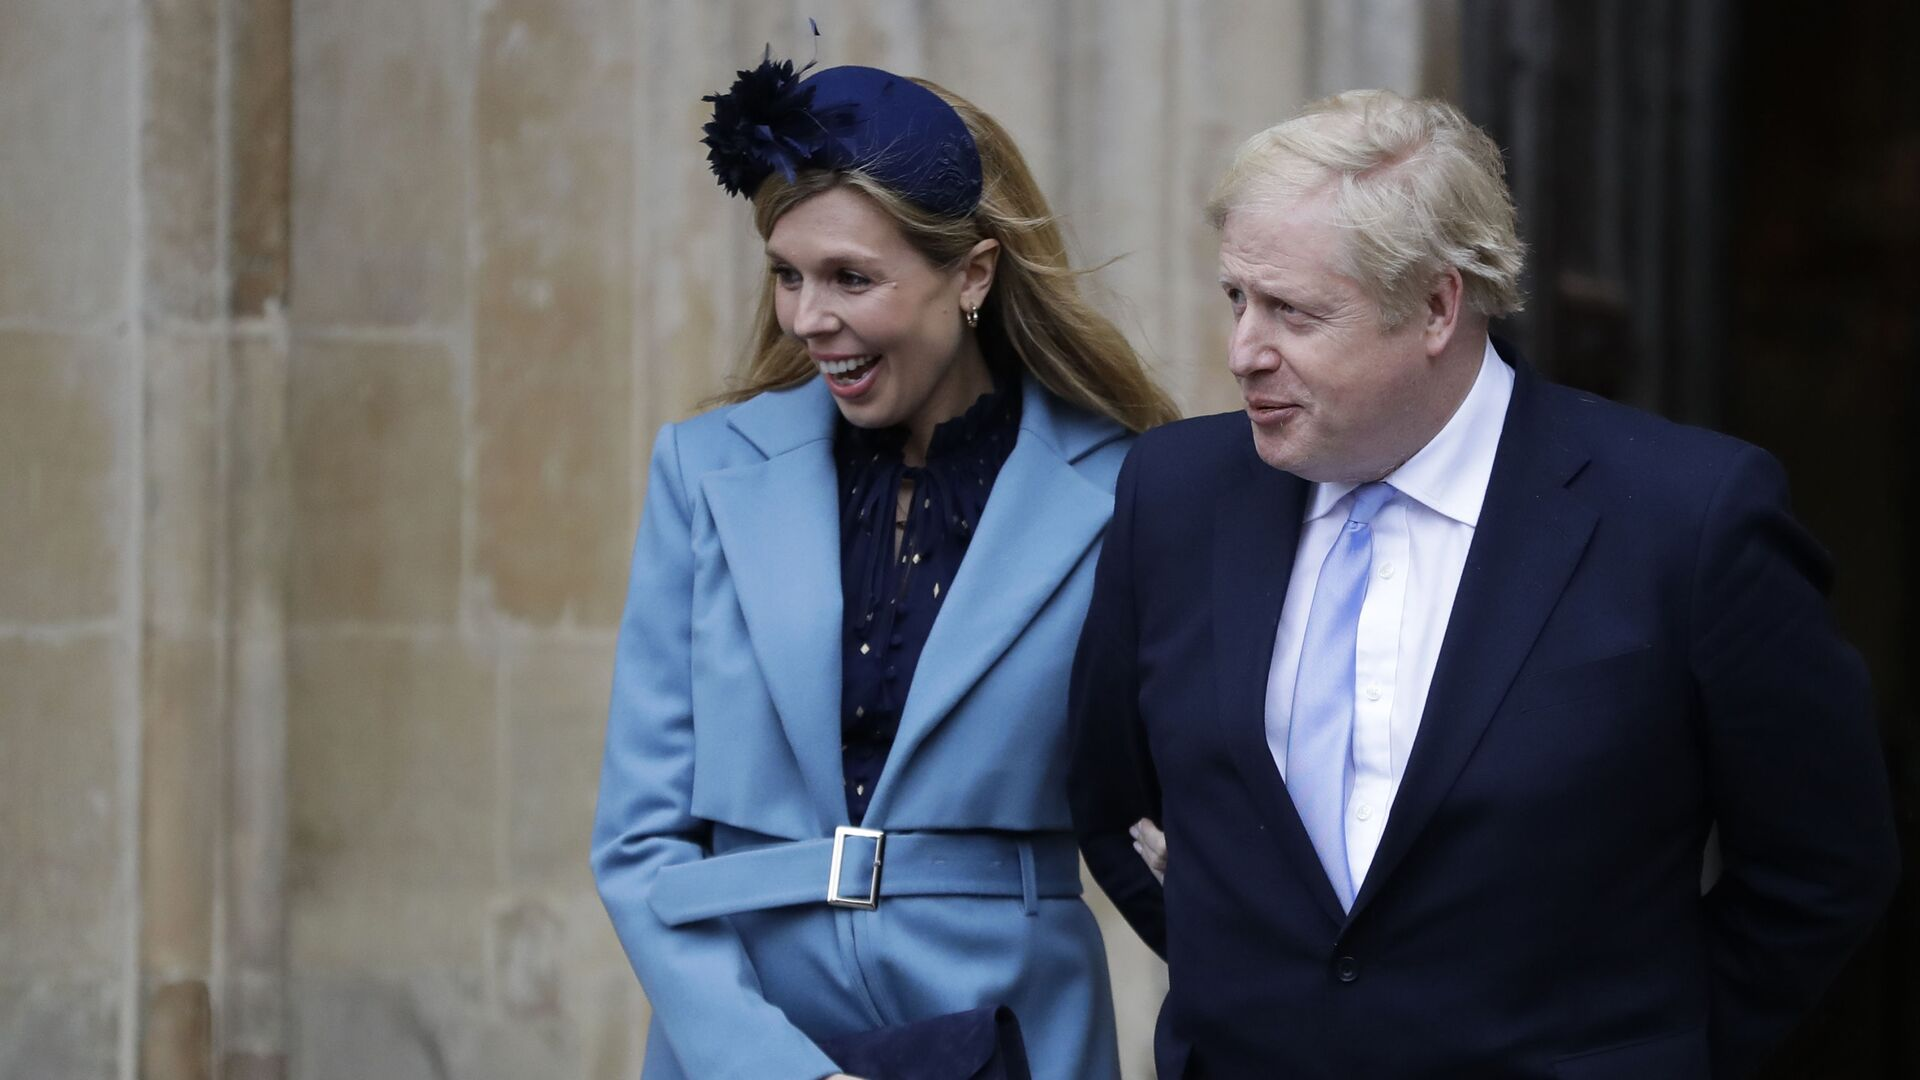 """In this Monday, March 9, 2020 file photo Britain's Prime Minister Boris Johnson and his partner Carrie Symonds arrive to attend the annual Commonwealth Day service at Westminster Abbey in London.  Boris Johnson and his partner Carrie Symonds have announced she gave birth to a healthy baby boy at a London hospital earlier this morning"""" Wednesday April 29, 2020, and that both mother and baby are doing well - Sputnik Italia, 1920, 30.05.2021"""